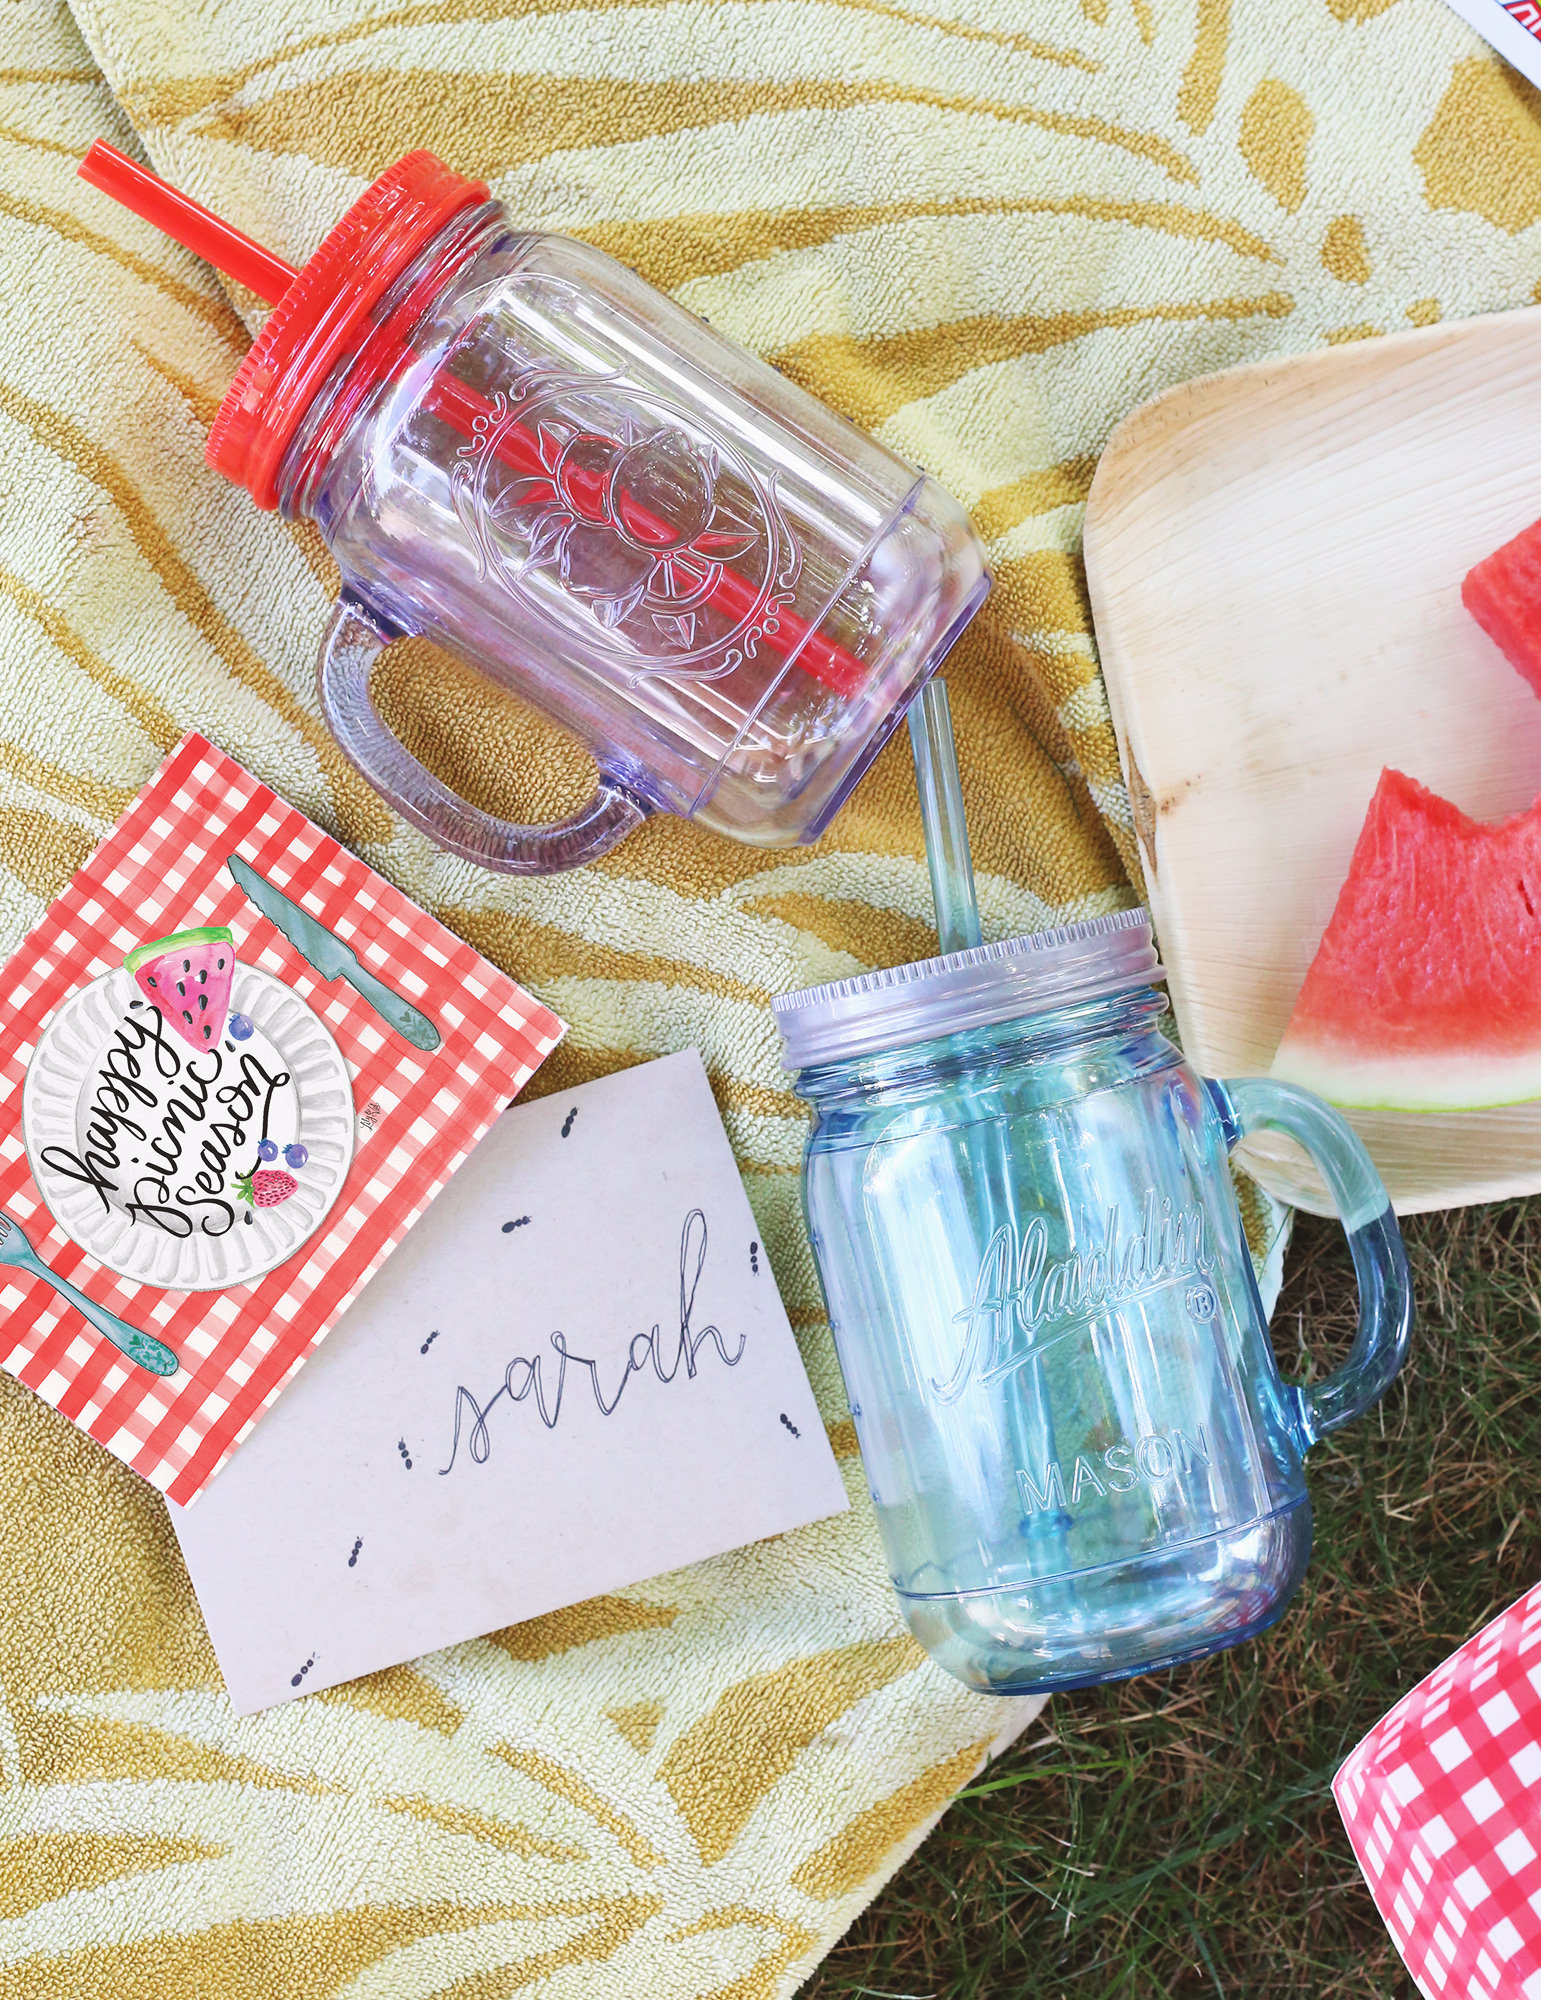 No picnic seems complete without ants- even if they're fake! A cute envelope decoration idea via Lily & Val Living!